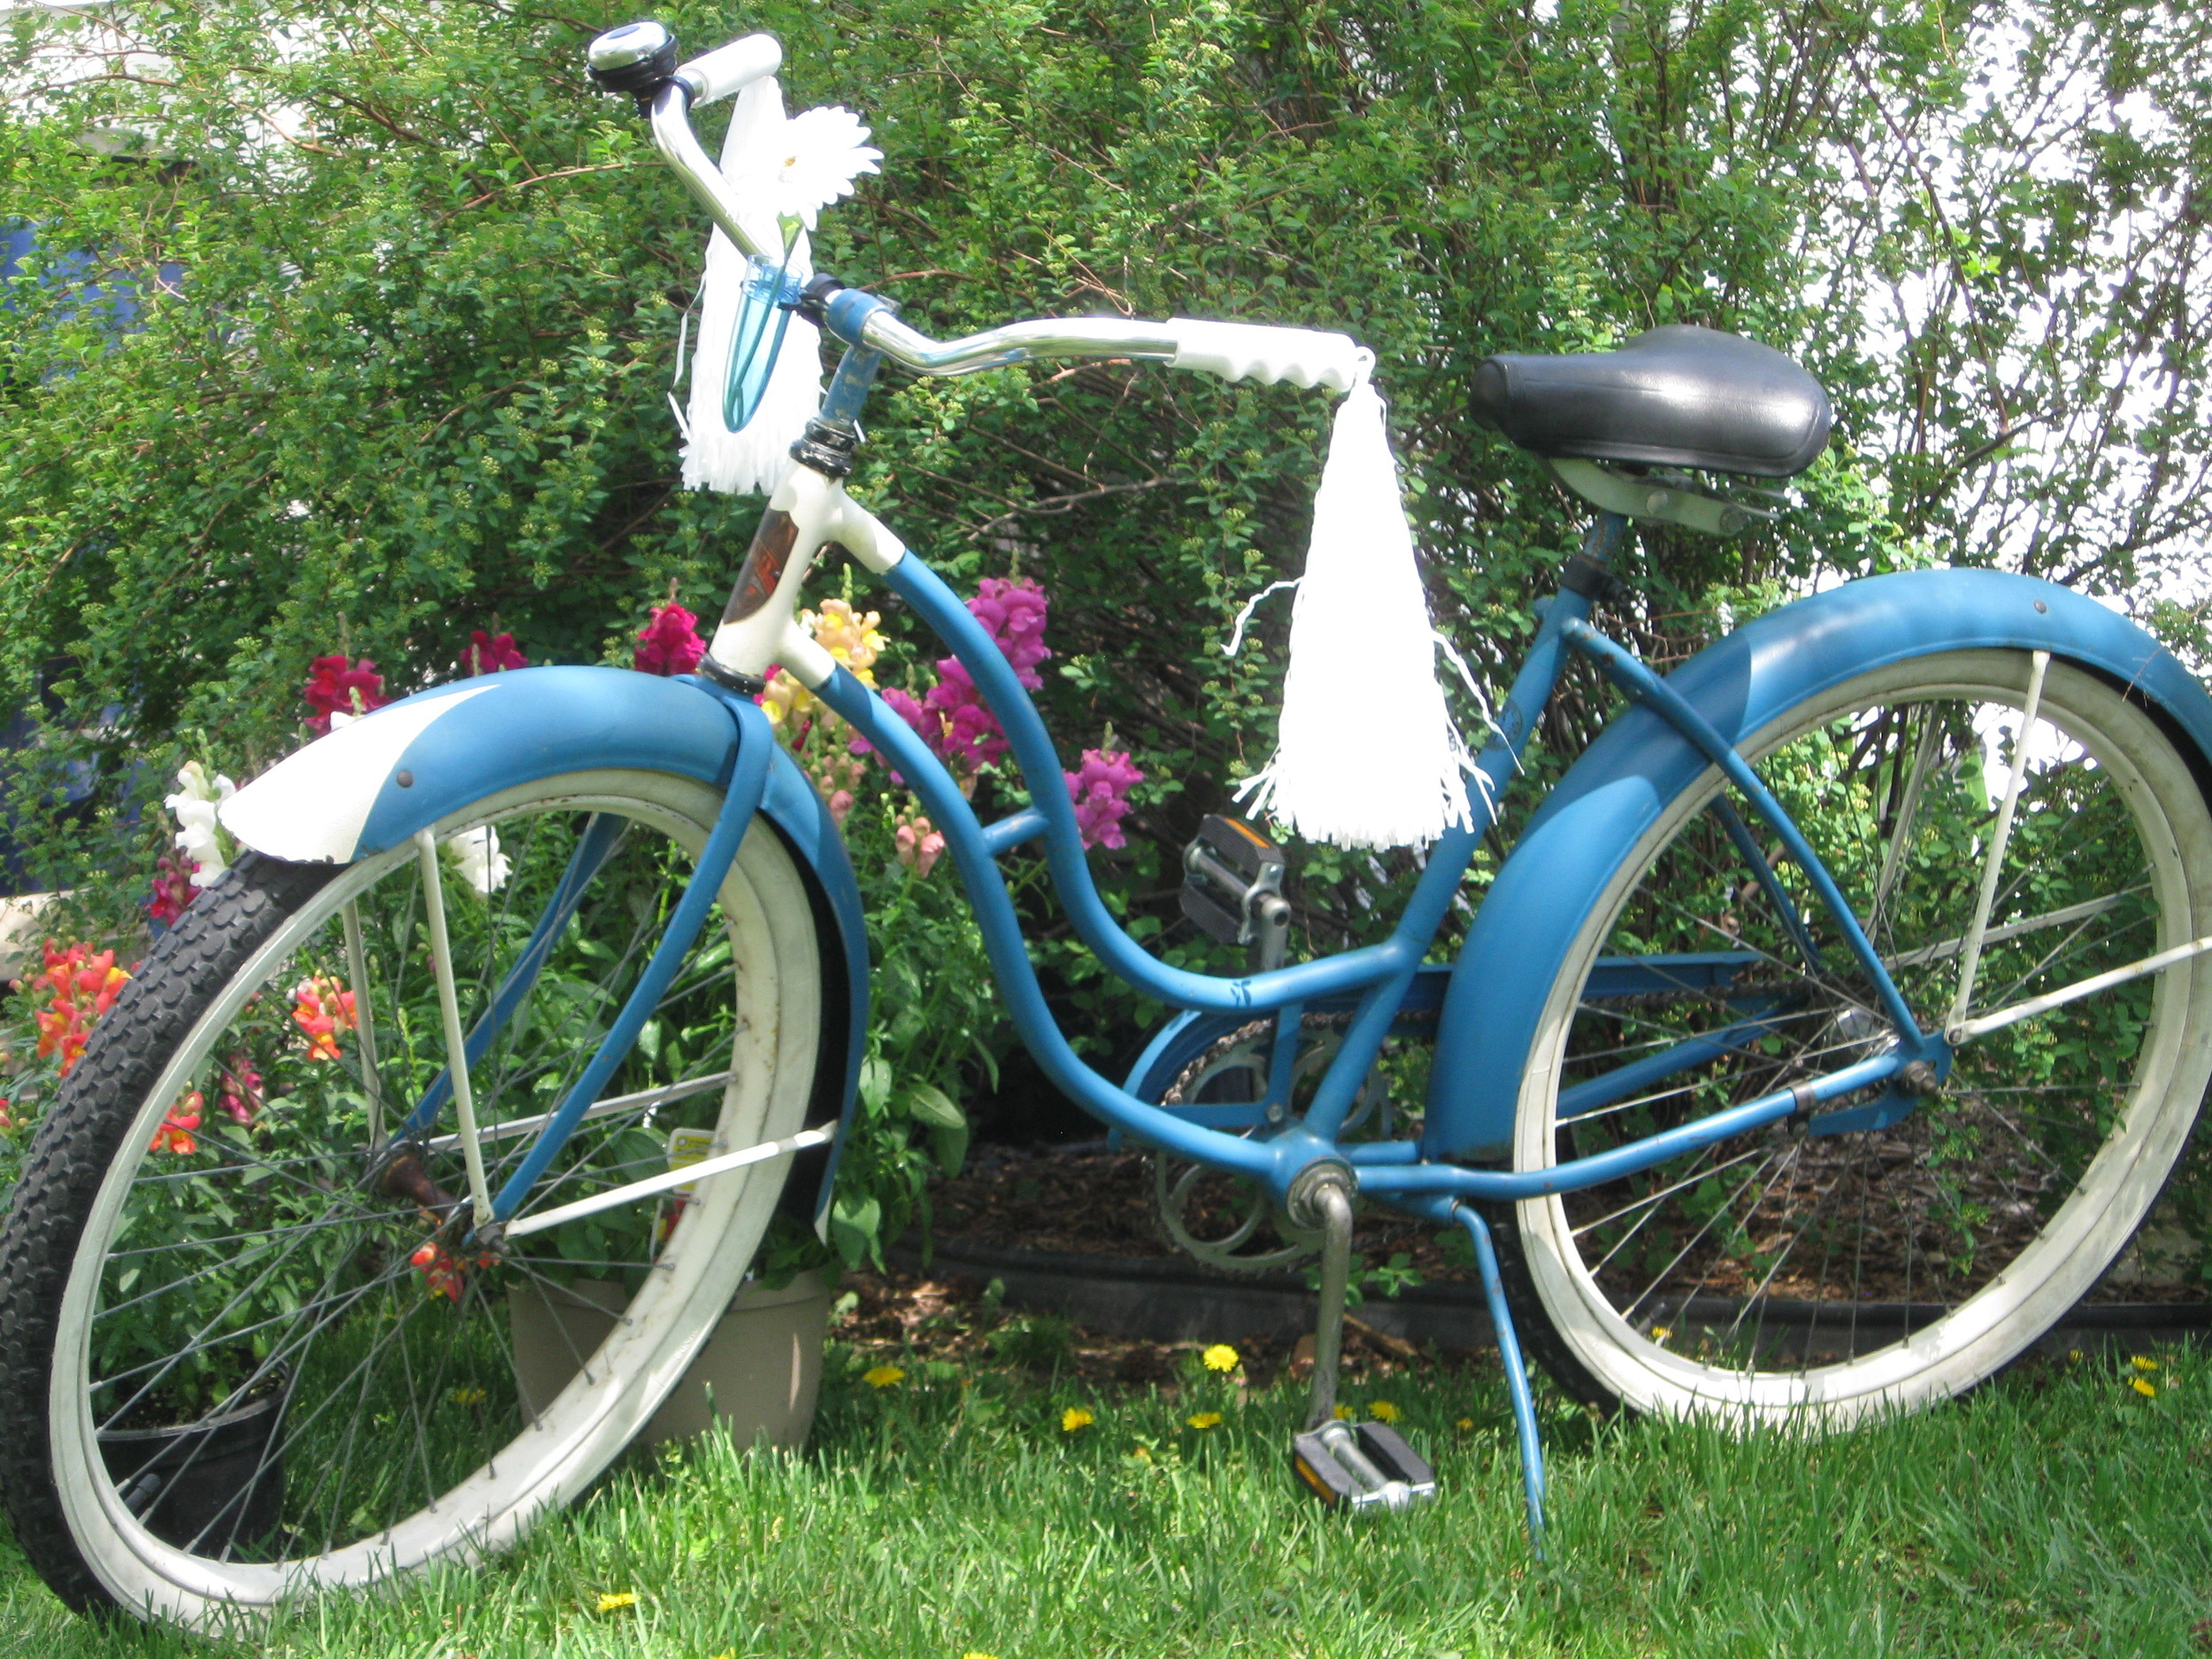 1953 Schwinn after the clean and restoration.